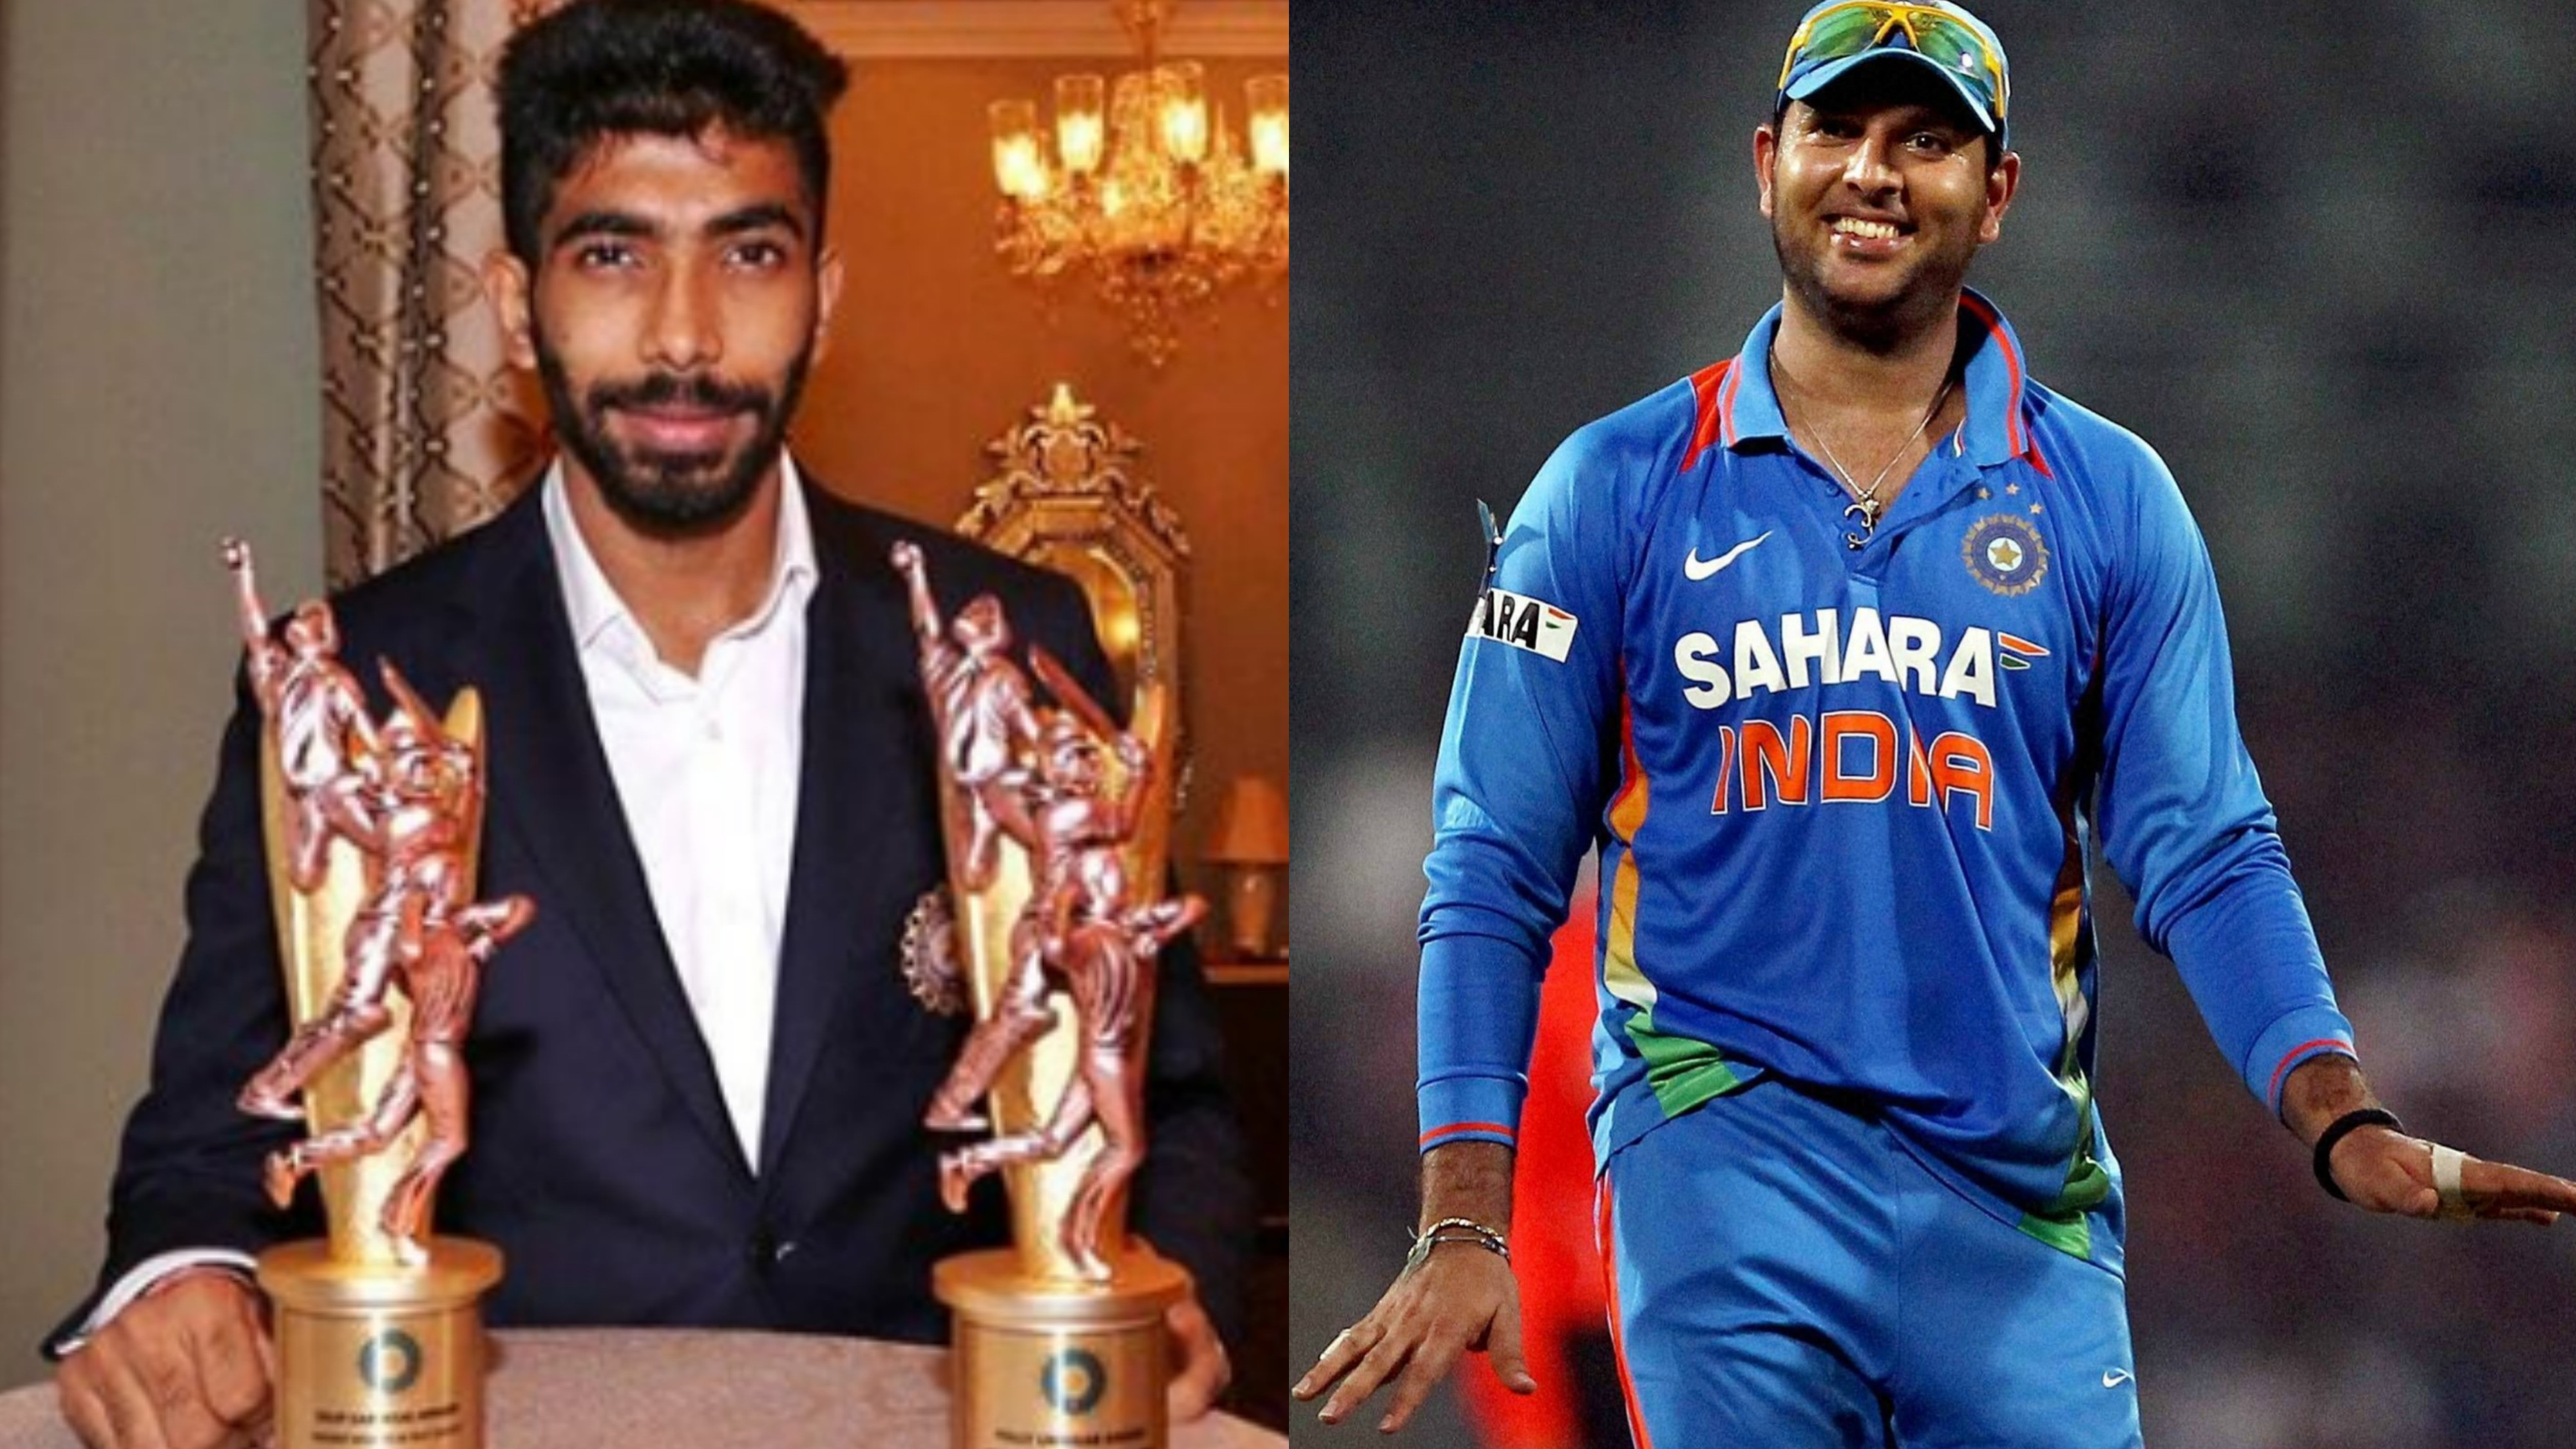 Yuvraj Singh asks Jasprit Bumrah to smile a bit more as he poses with his prestigious awards